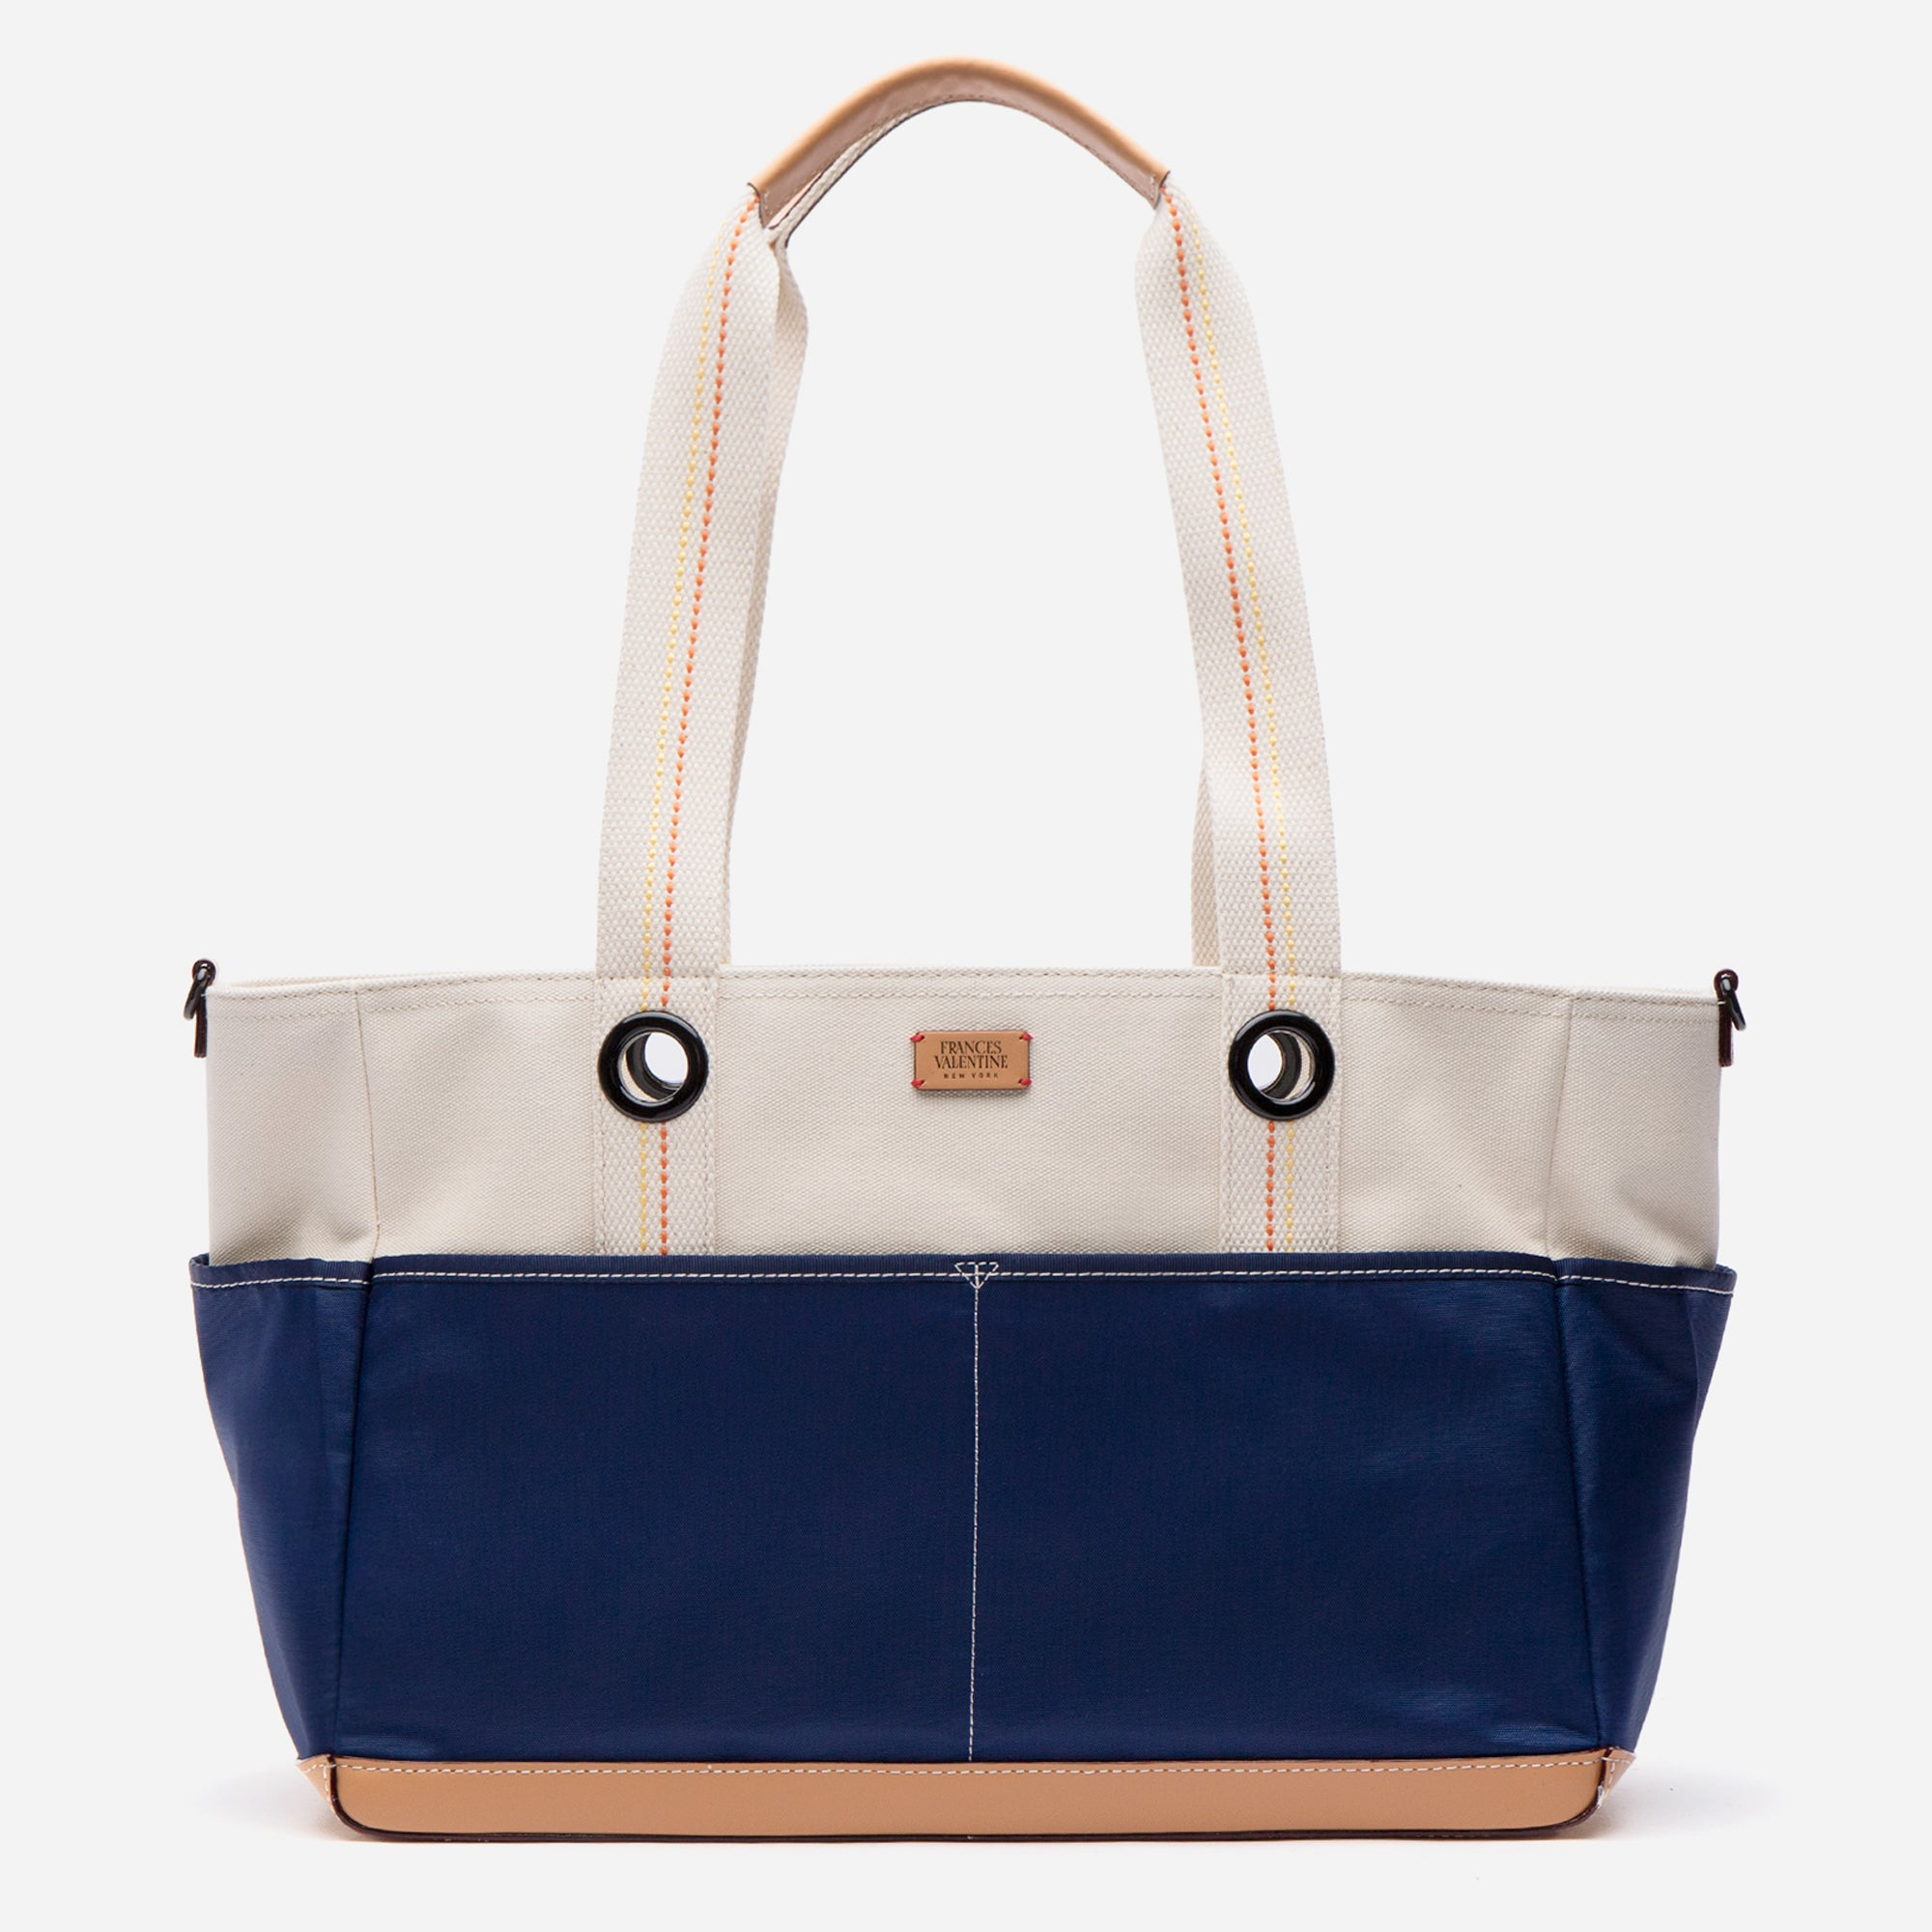 Gardening Canvas Tote Natural Navy - Frances Valentine